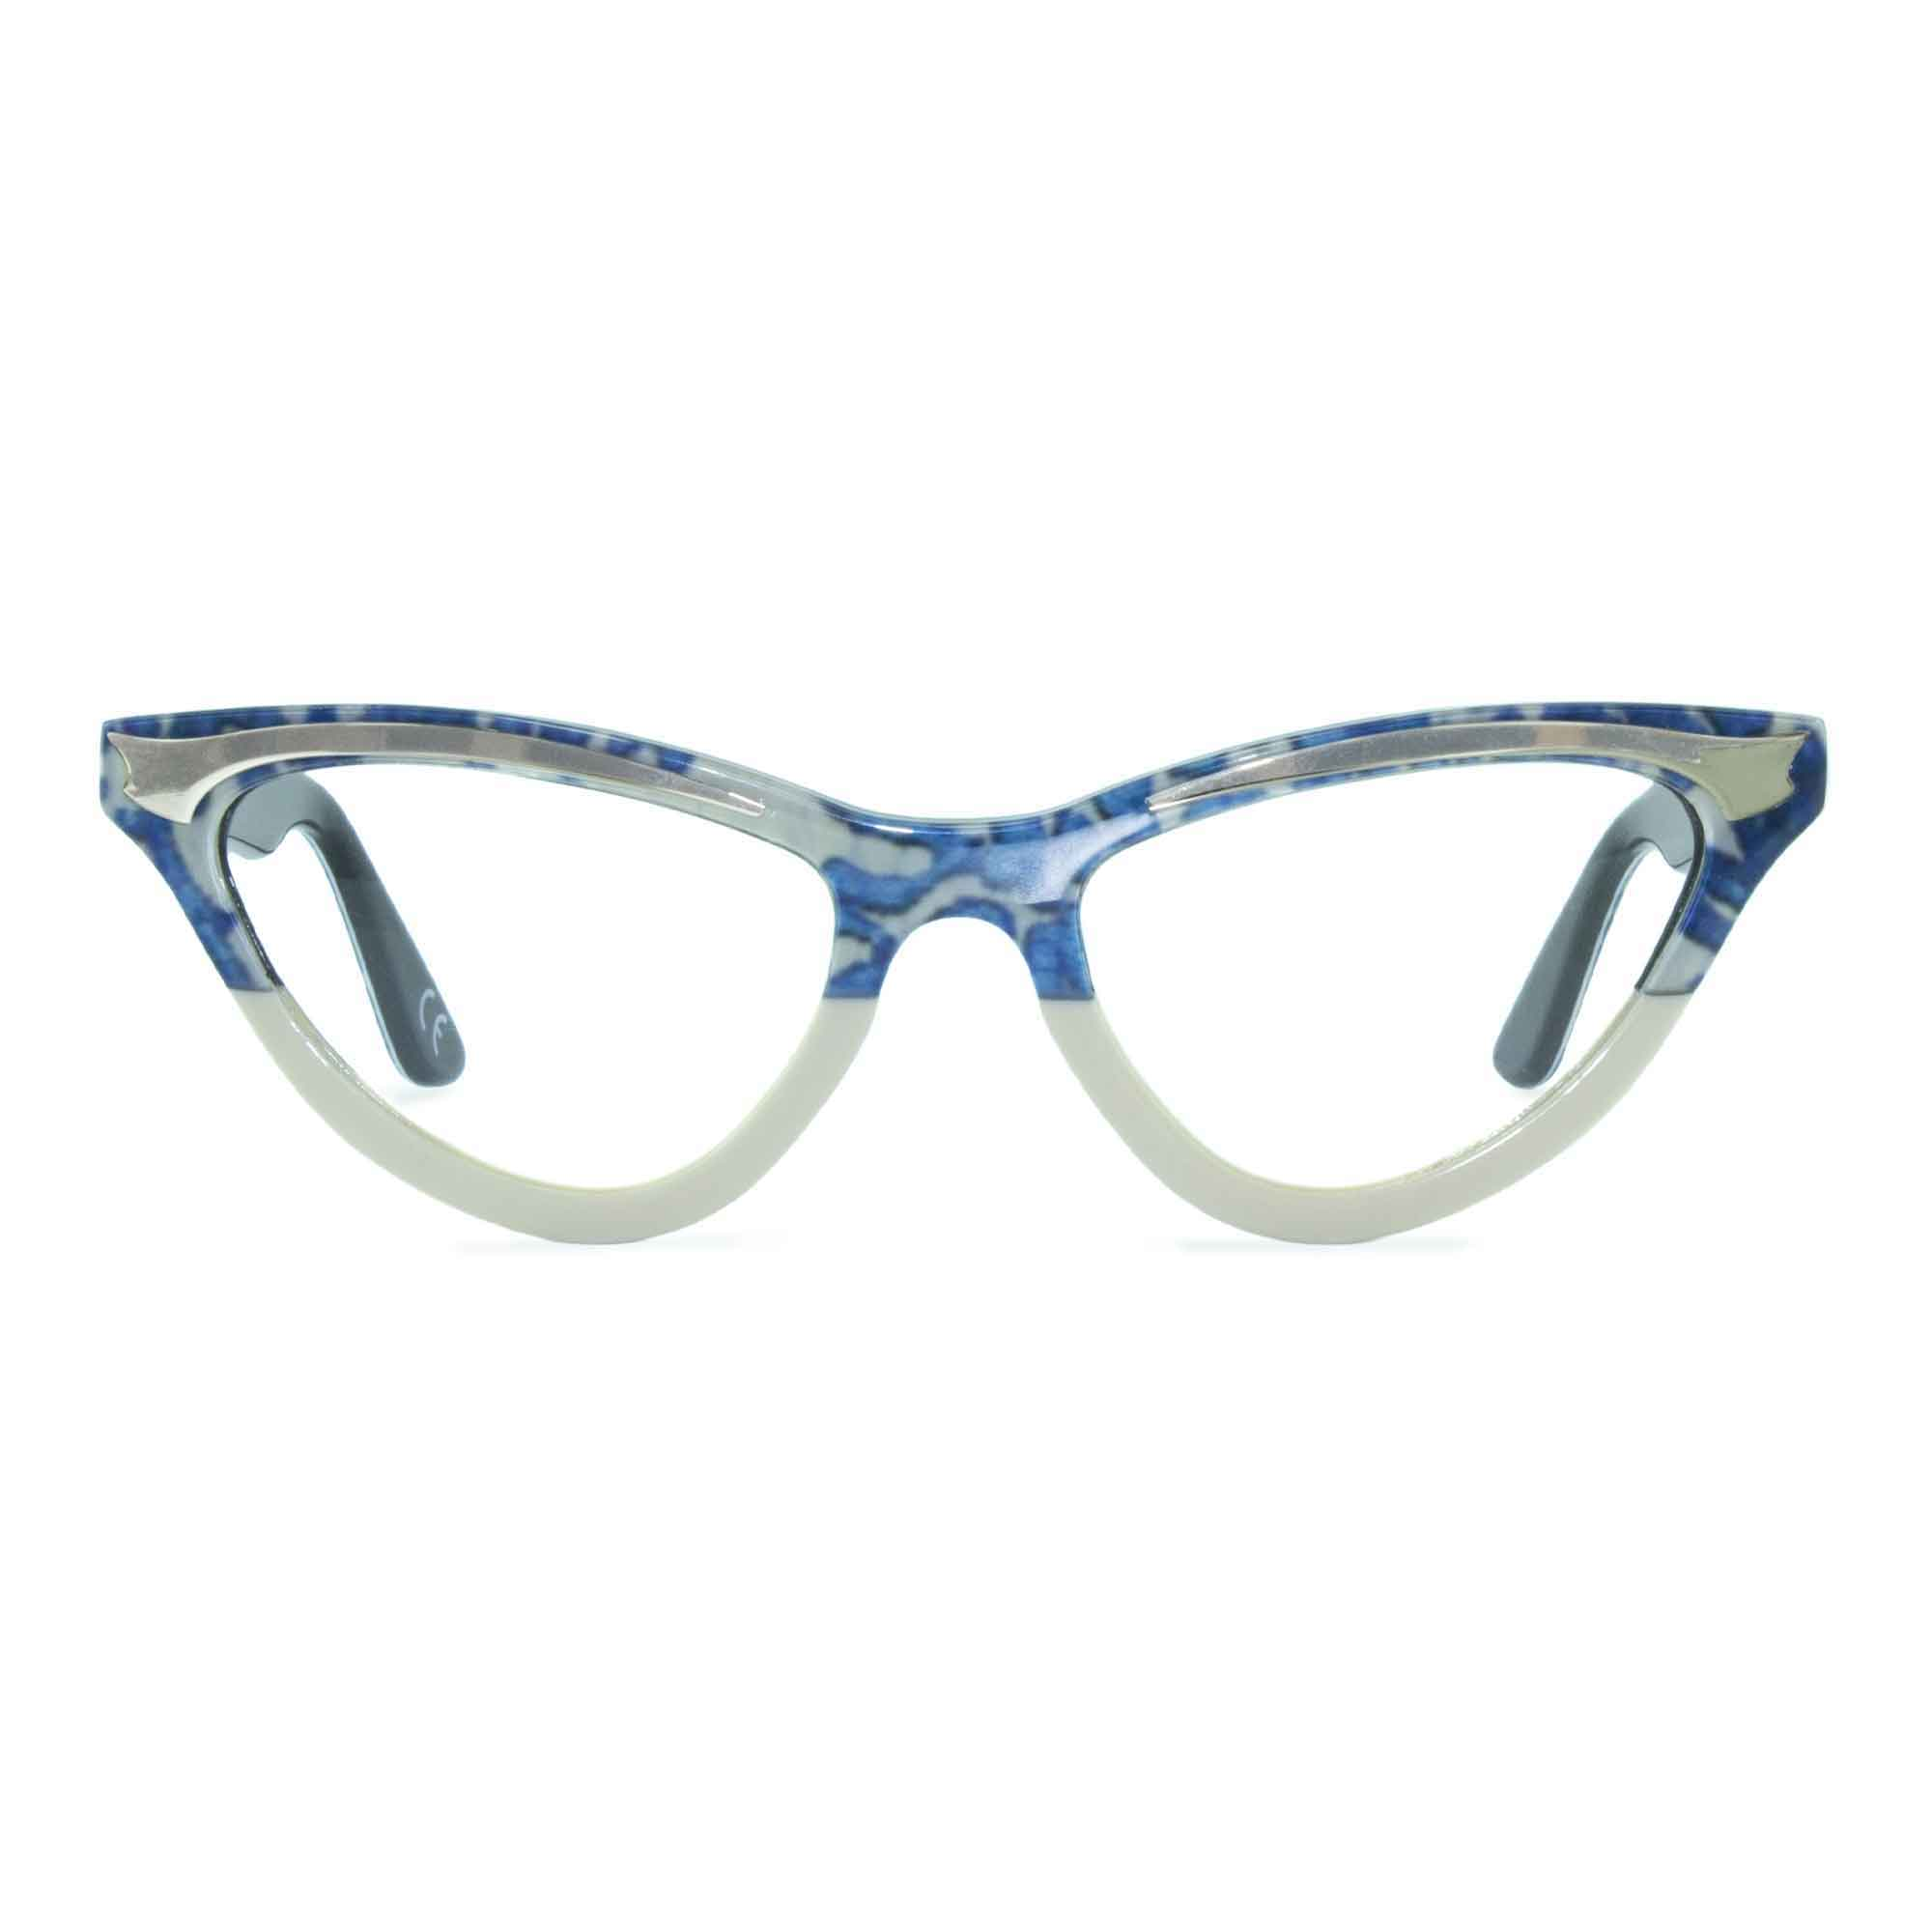 Joiuss maryloo blue lace & cream cat eye glasses